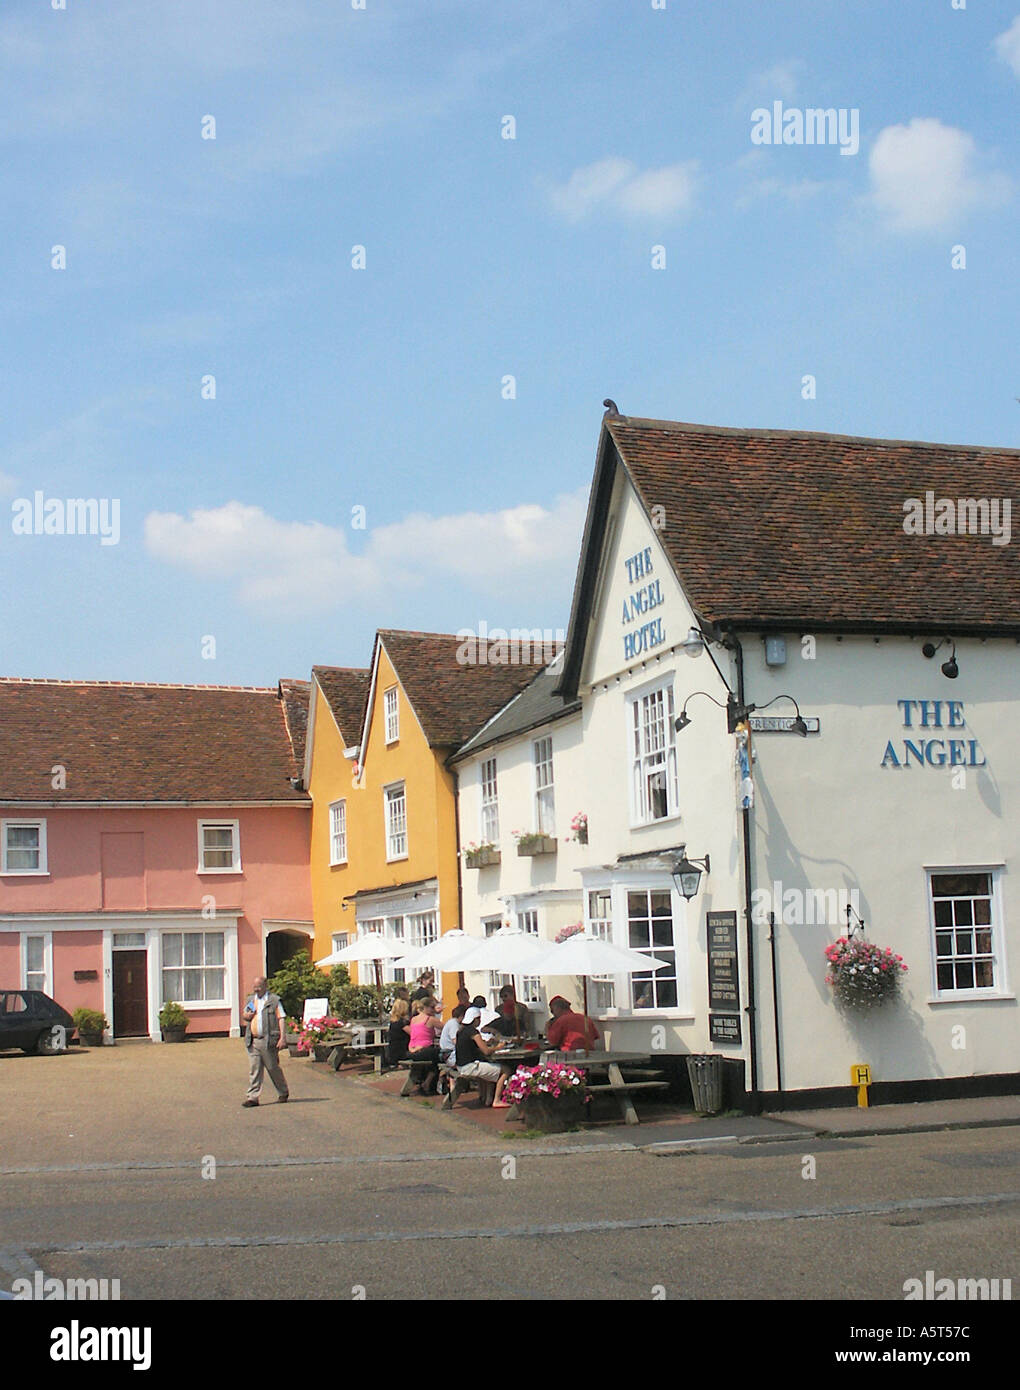 The Angel Inn and Market Place Lavenham Suffolk England Stock Photo